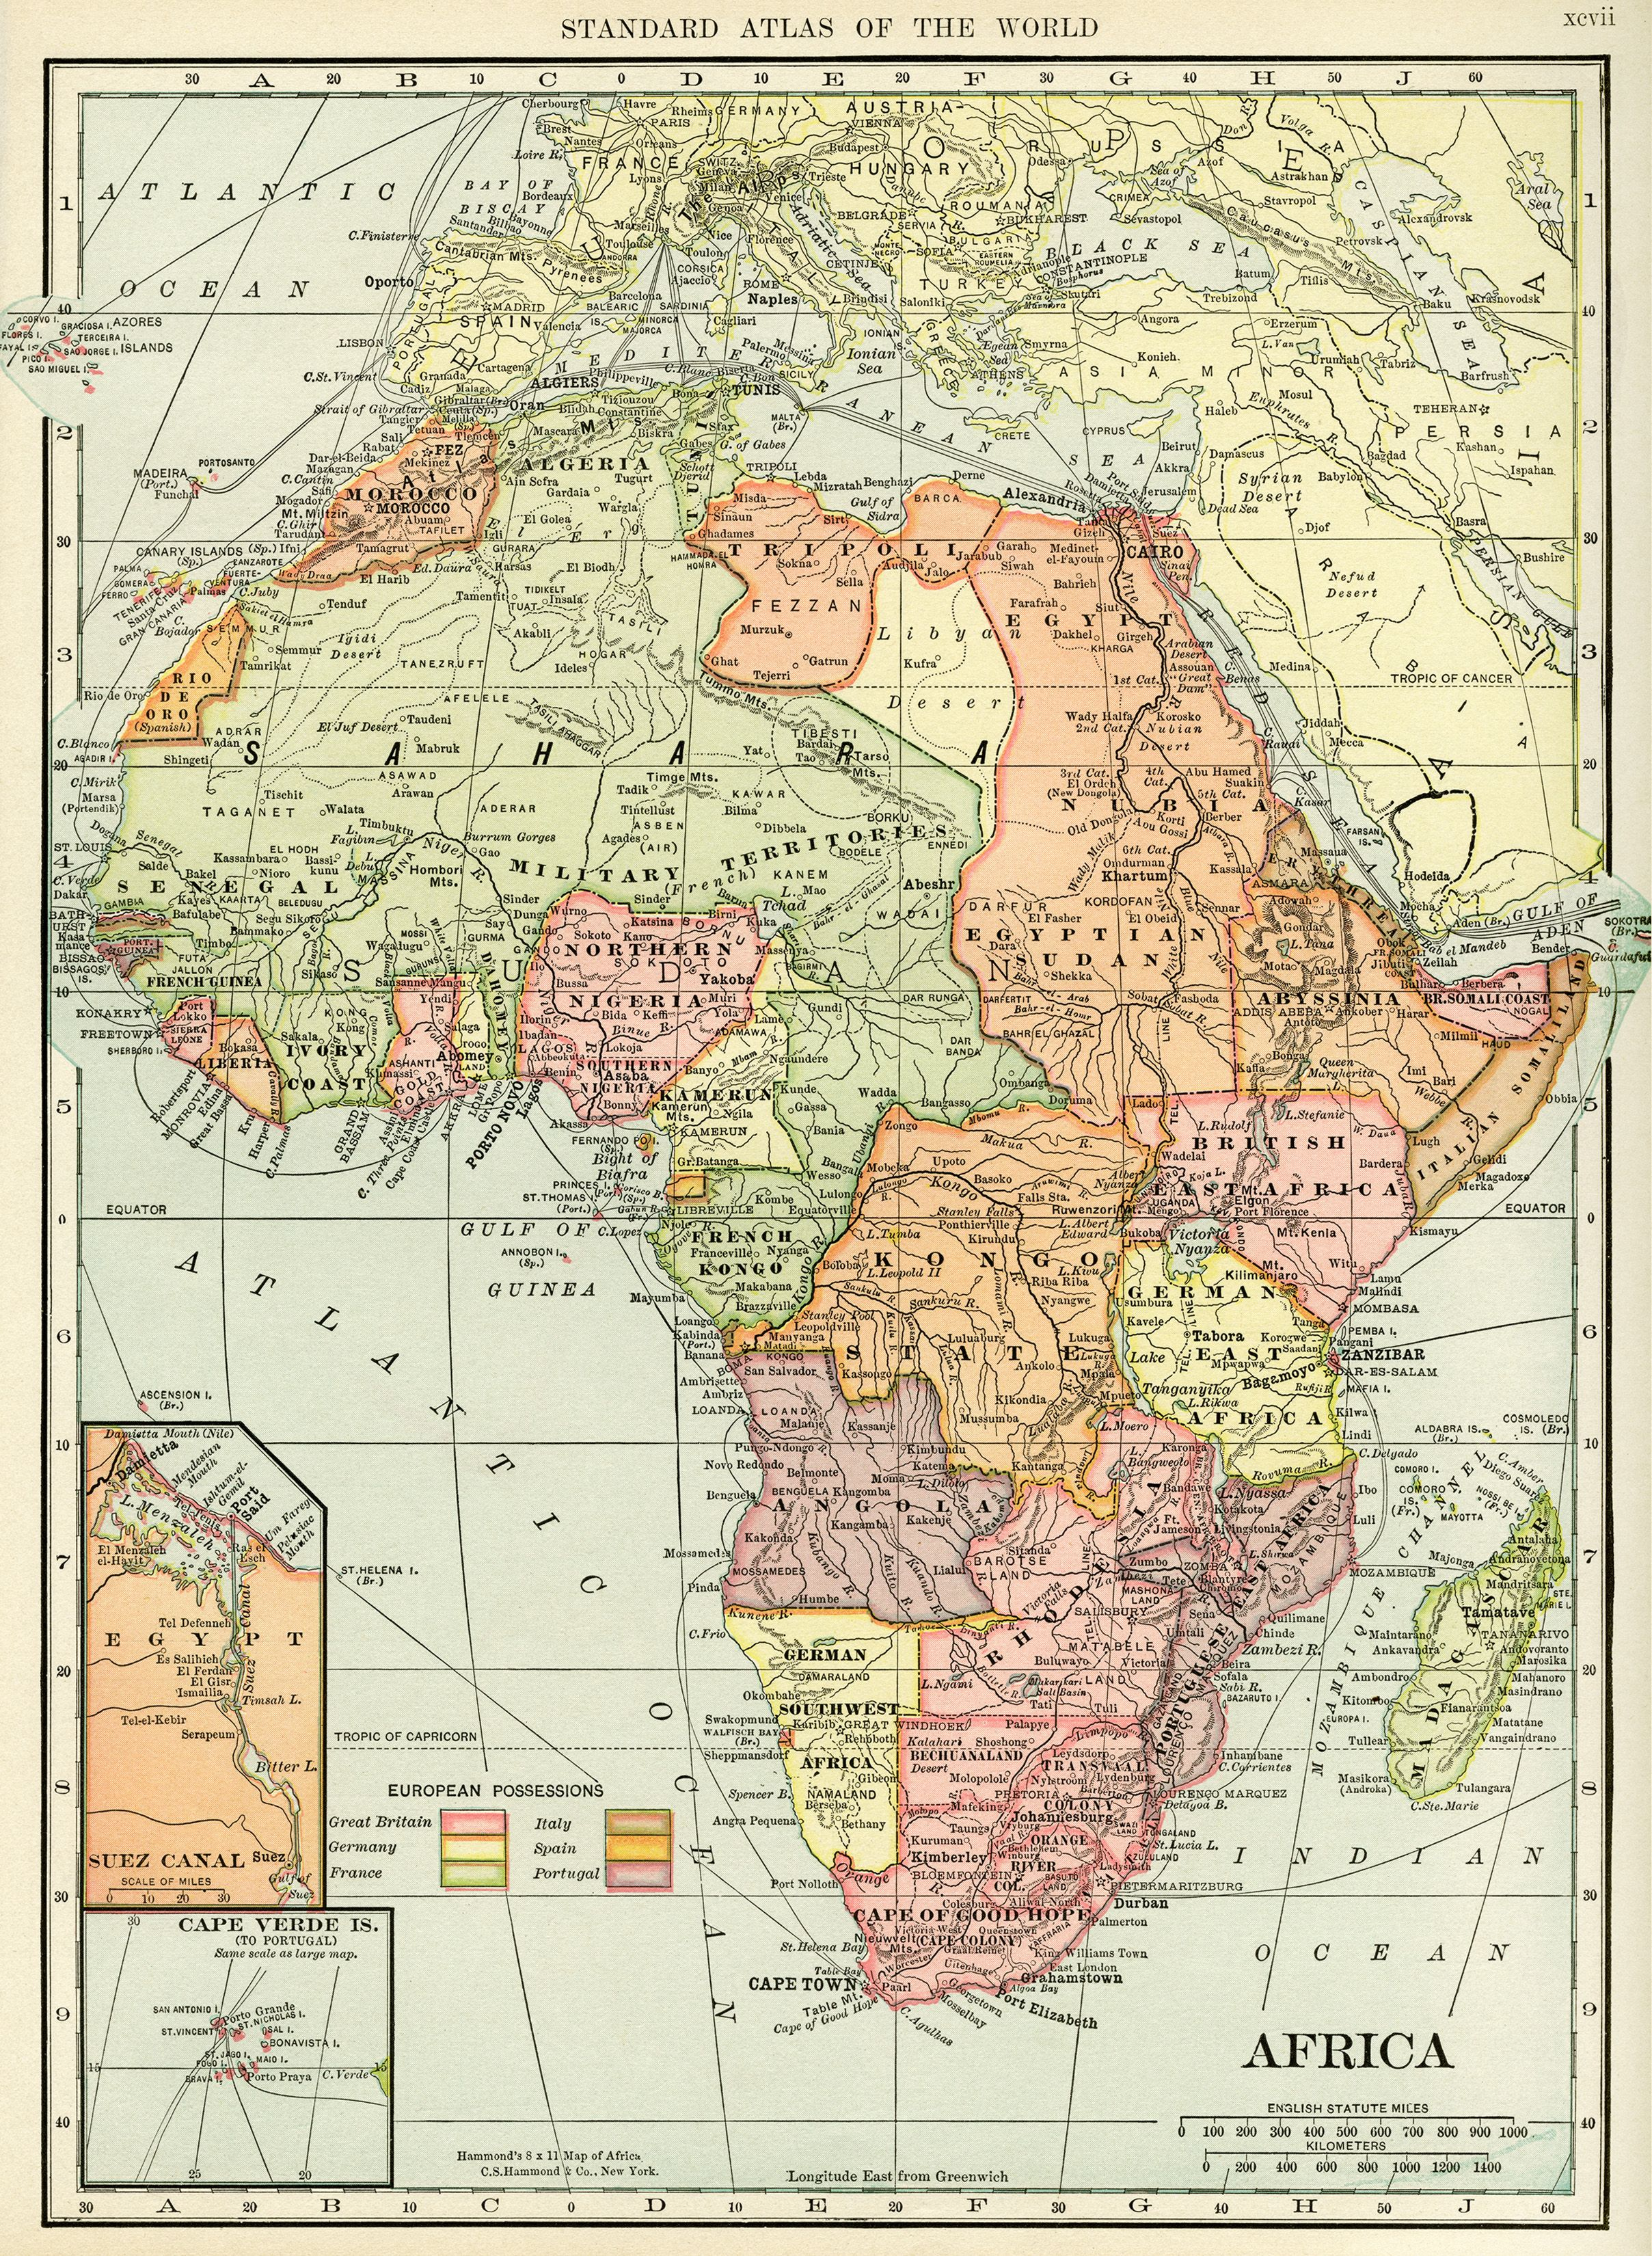 C s hammond map of africa antique historical map history geography c s hammond map of africa antique historical map history geography africa vintage map gumiabroncs Images